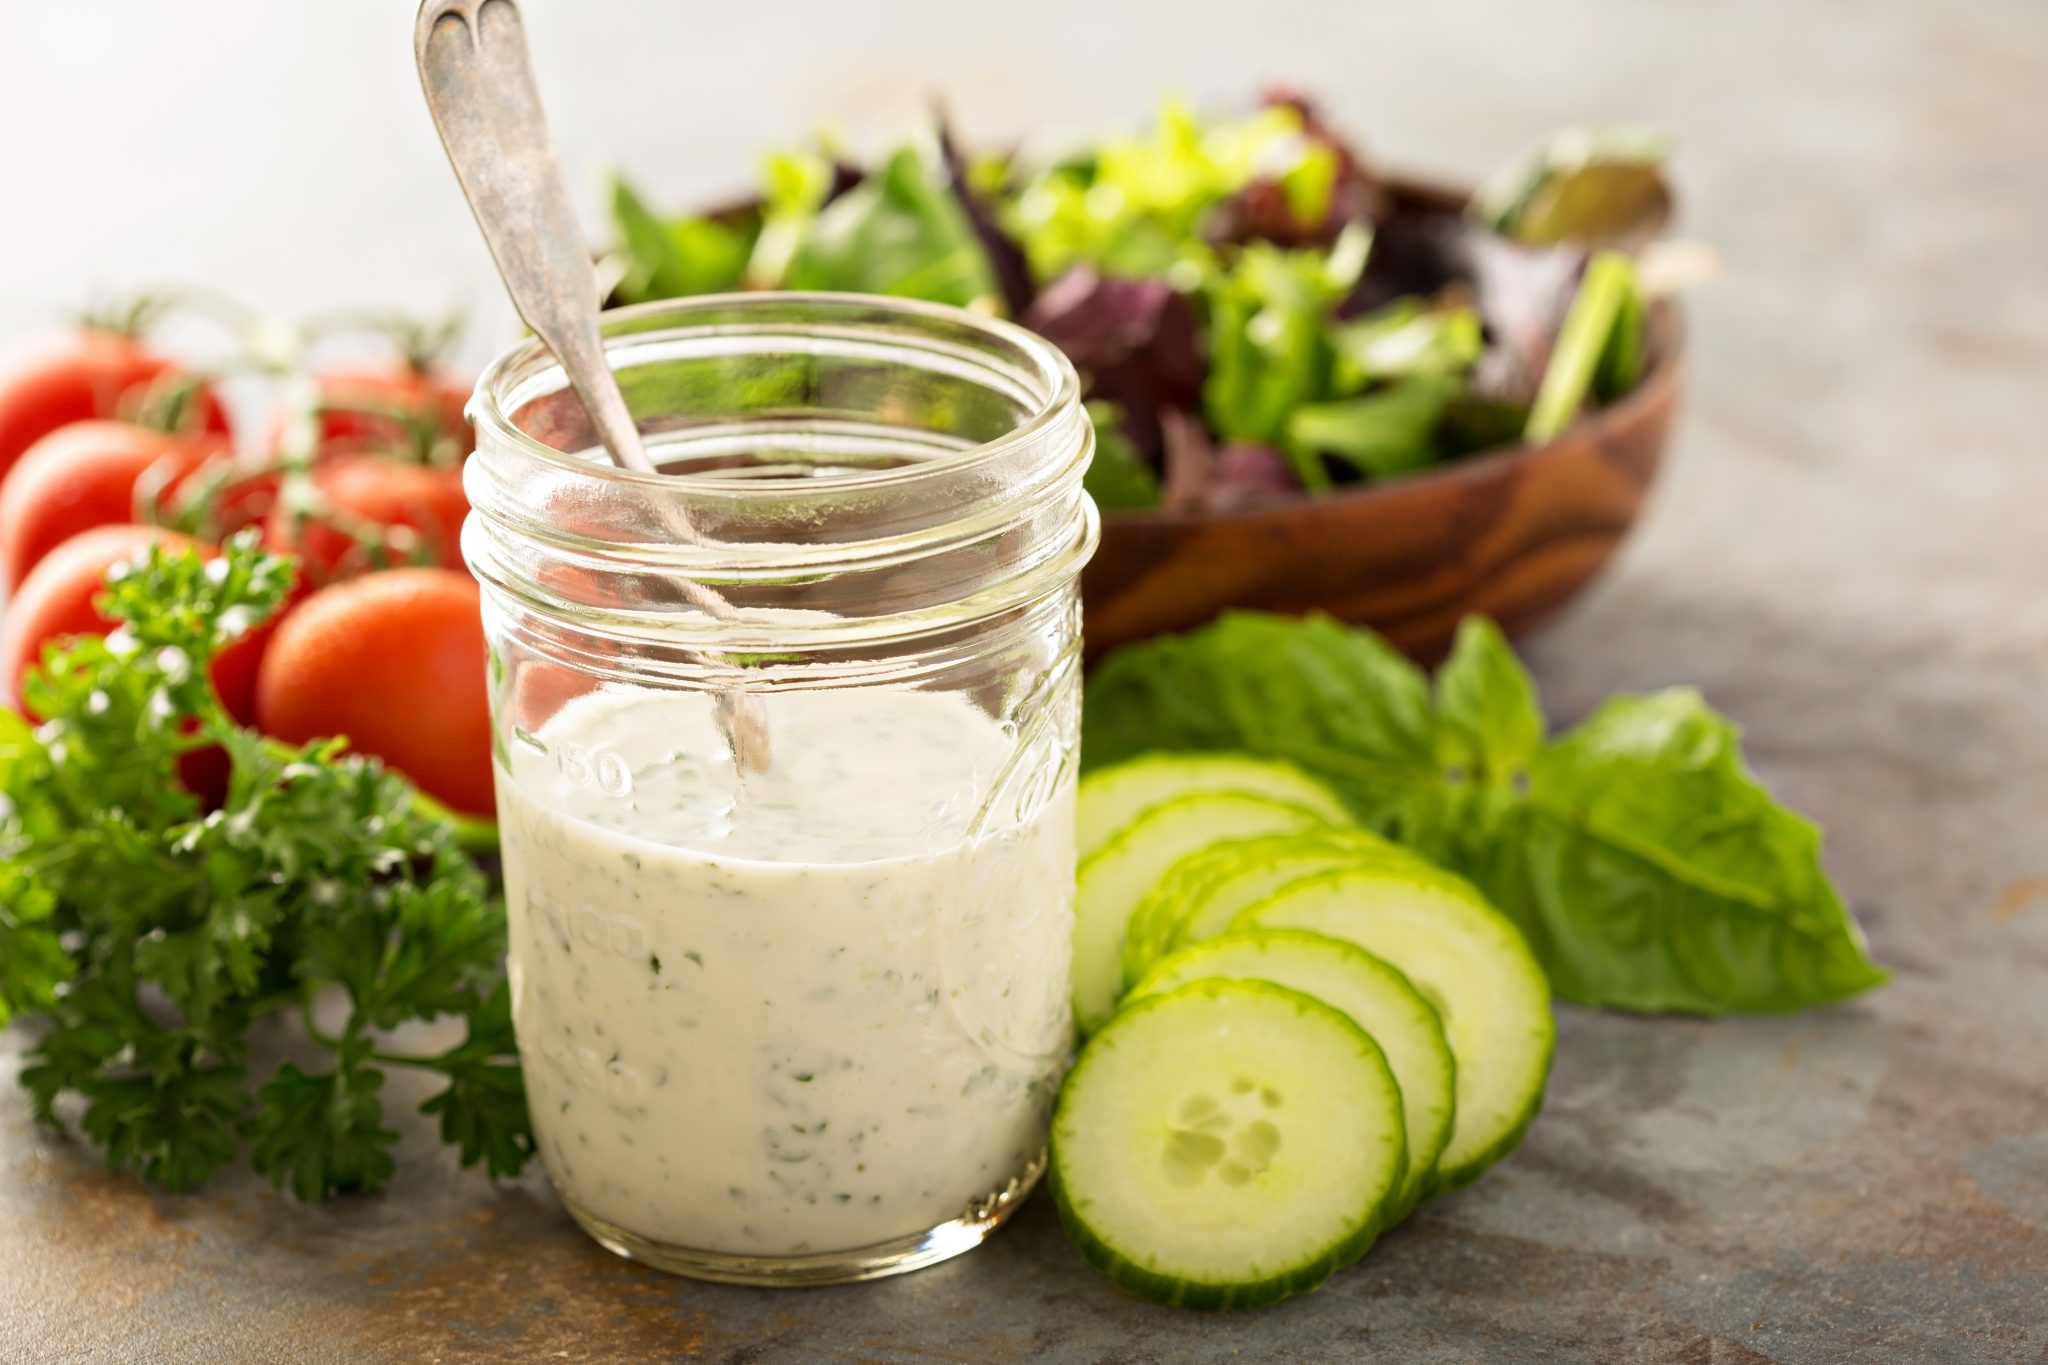 How Long Does Salad Dressing Last? Can It Go Bad?